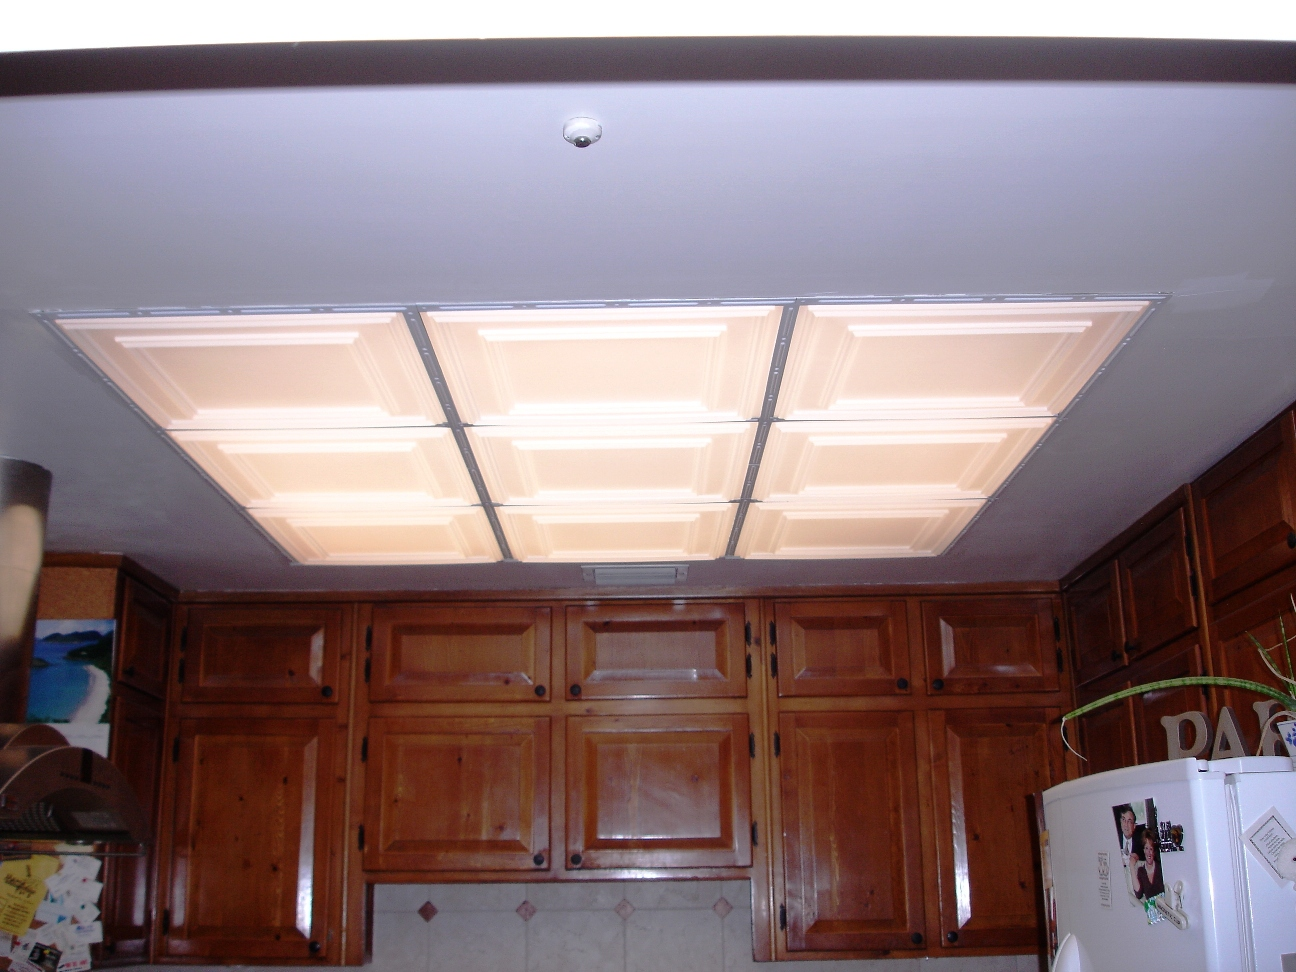 Translucent ceiling tiles pranksenders ceilume stratford tiles swimming pool with translucent ceiling tiles translucent ceiling tiles doublecrazyfo Choice Image